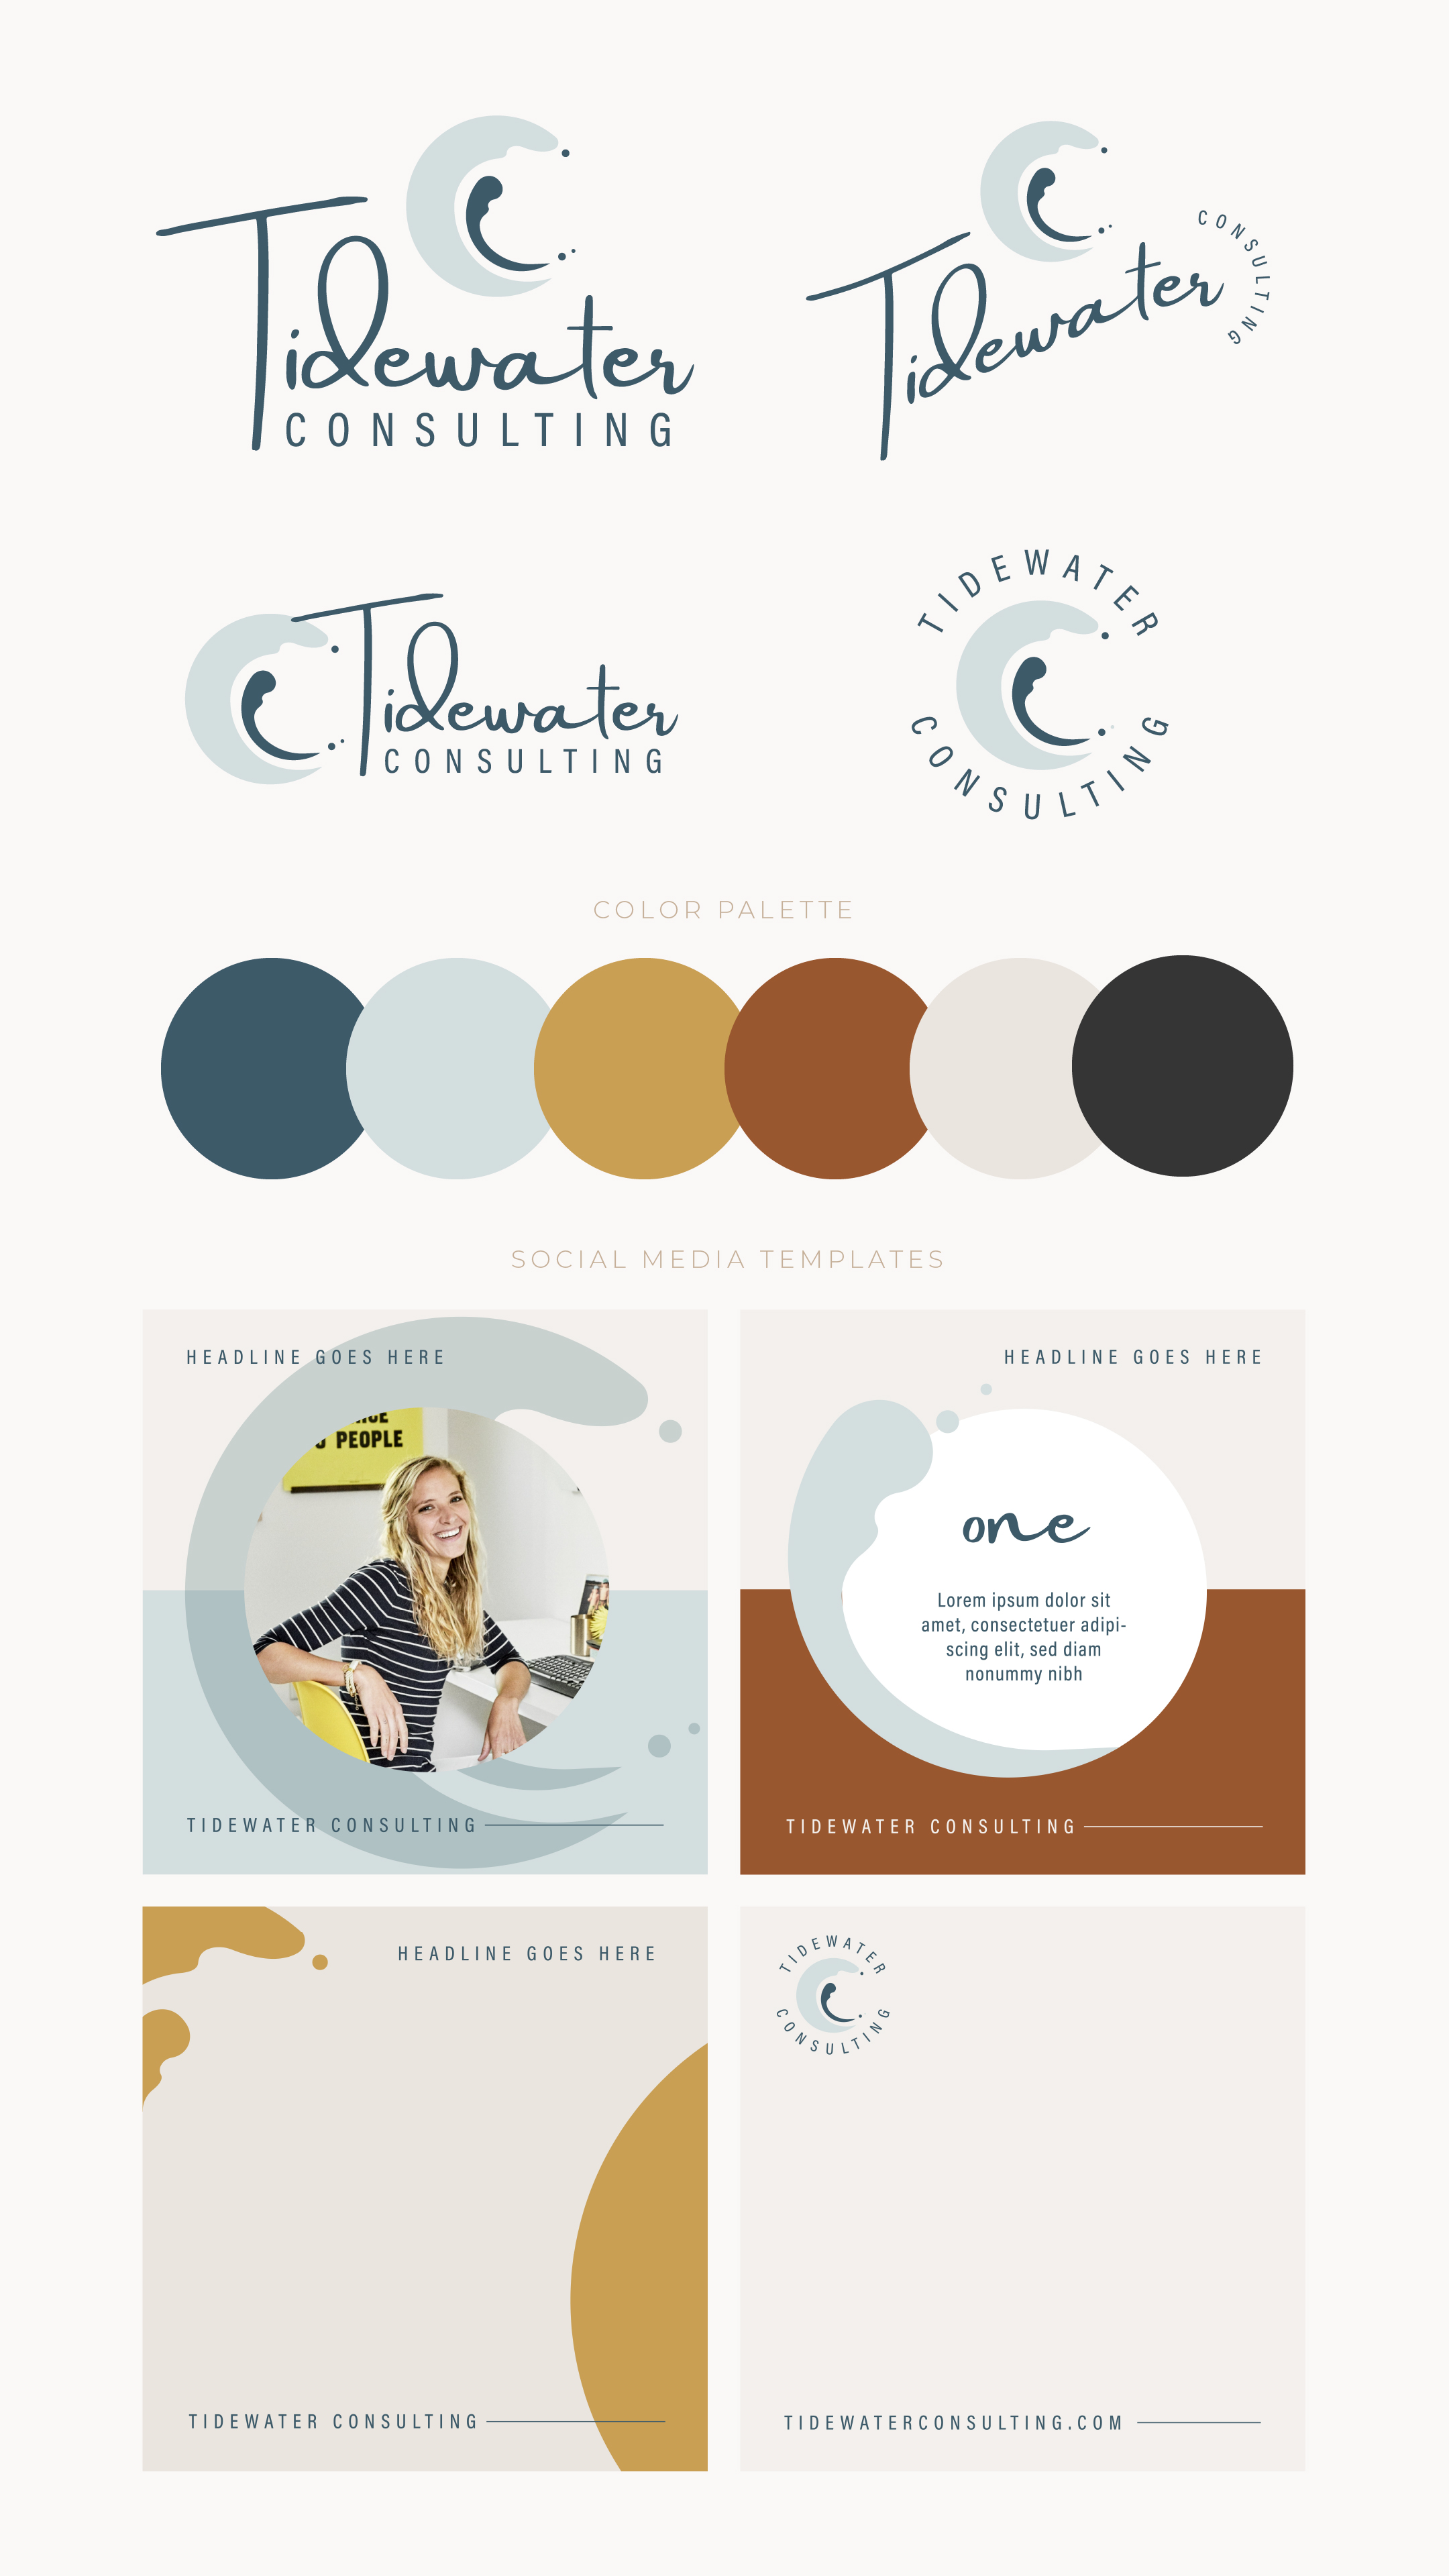 Tidewater Consulting Branding